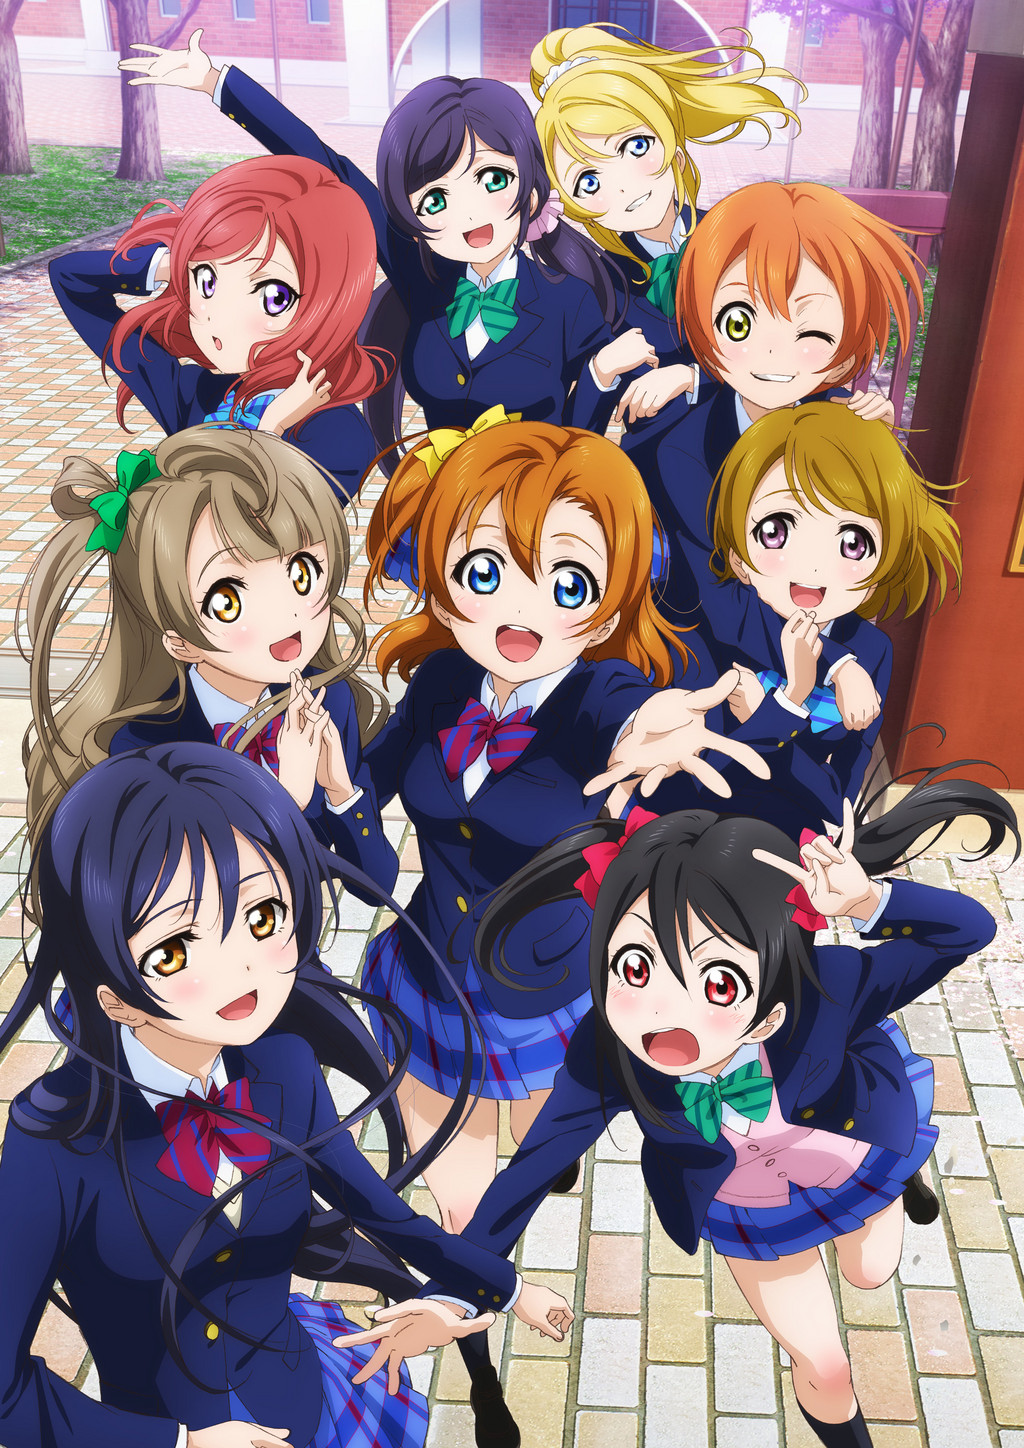 ラブライブ! School idol project